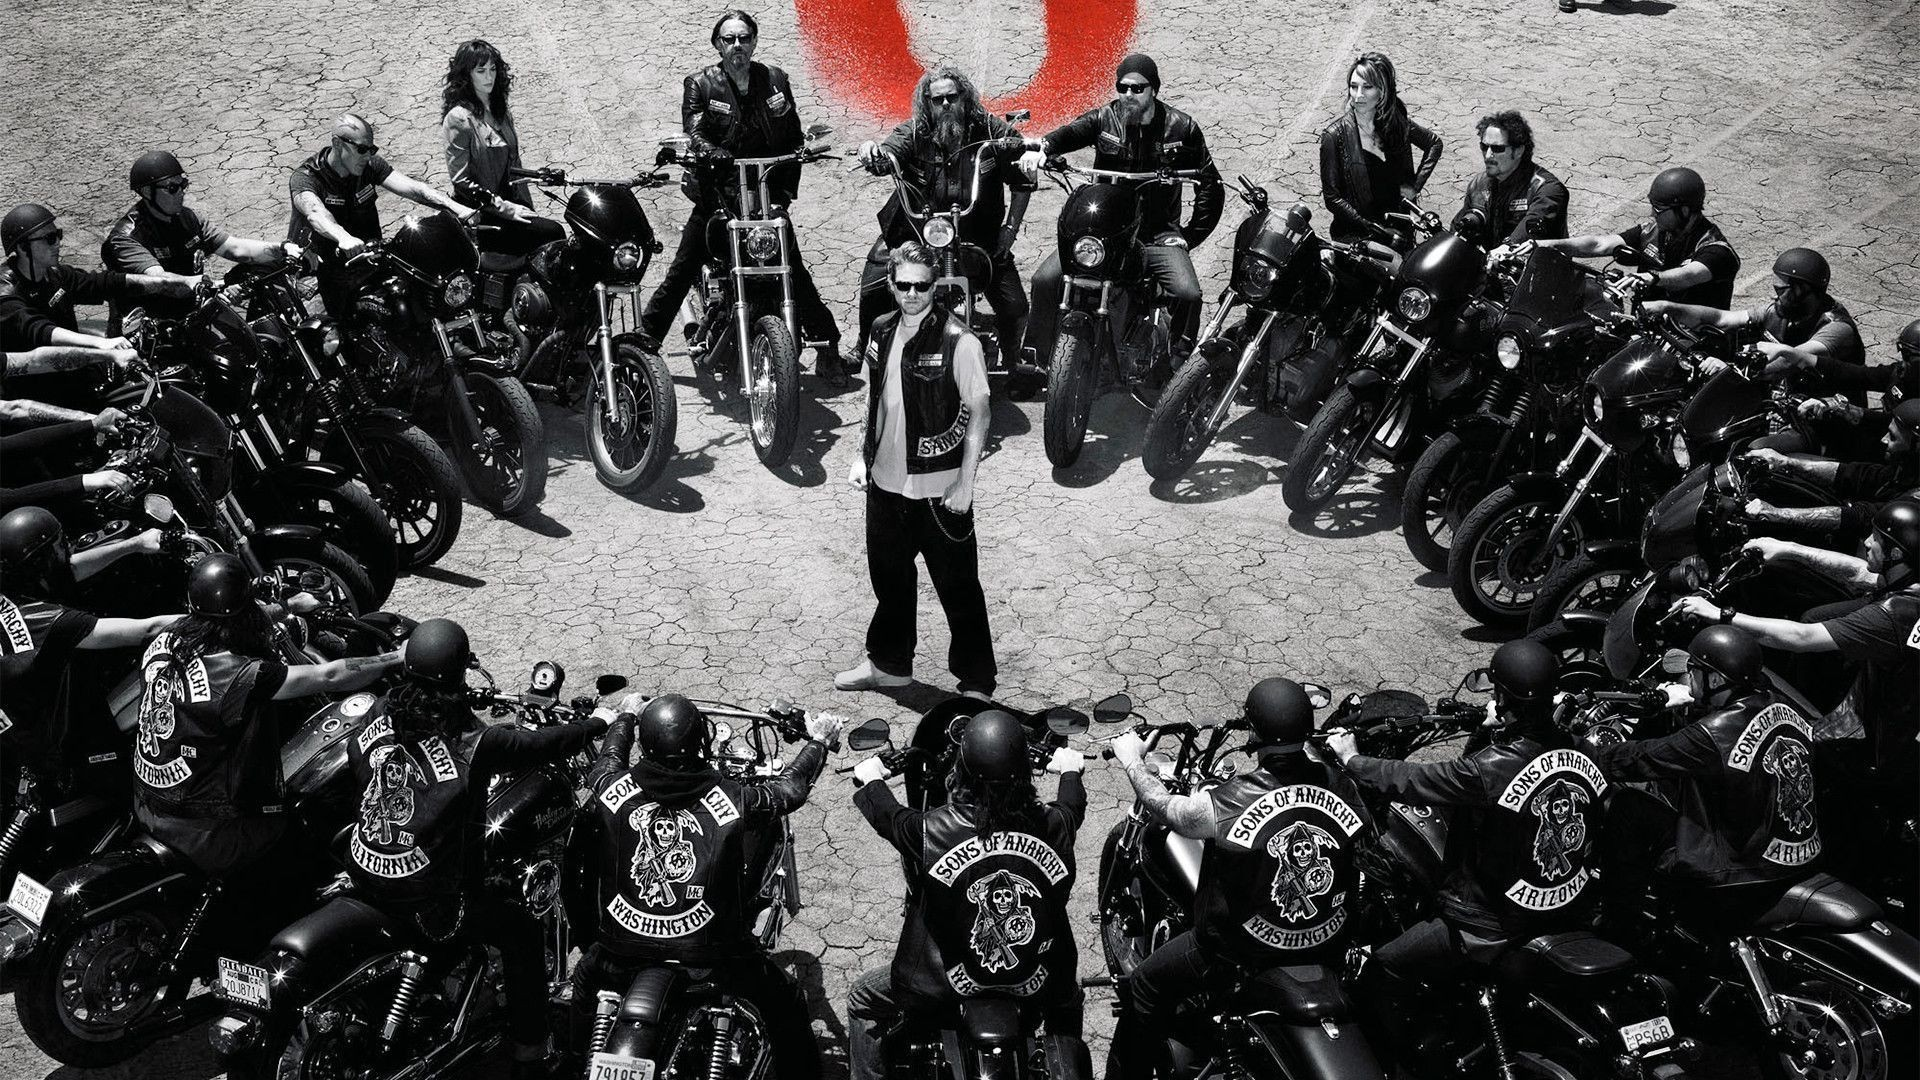 Sons of Anarchy Wallpapers (66+ images)